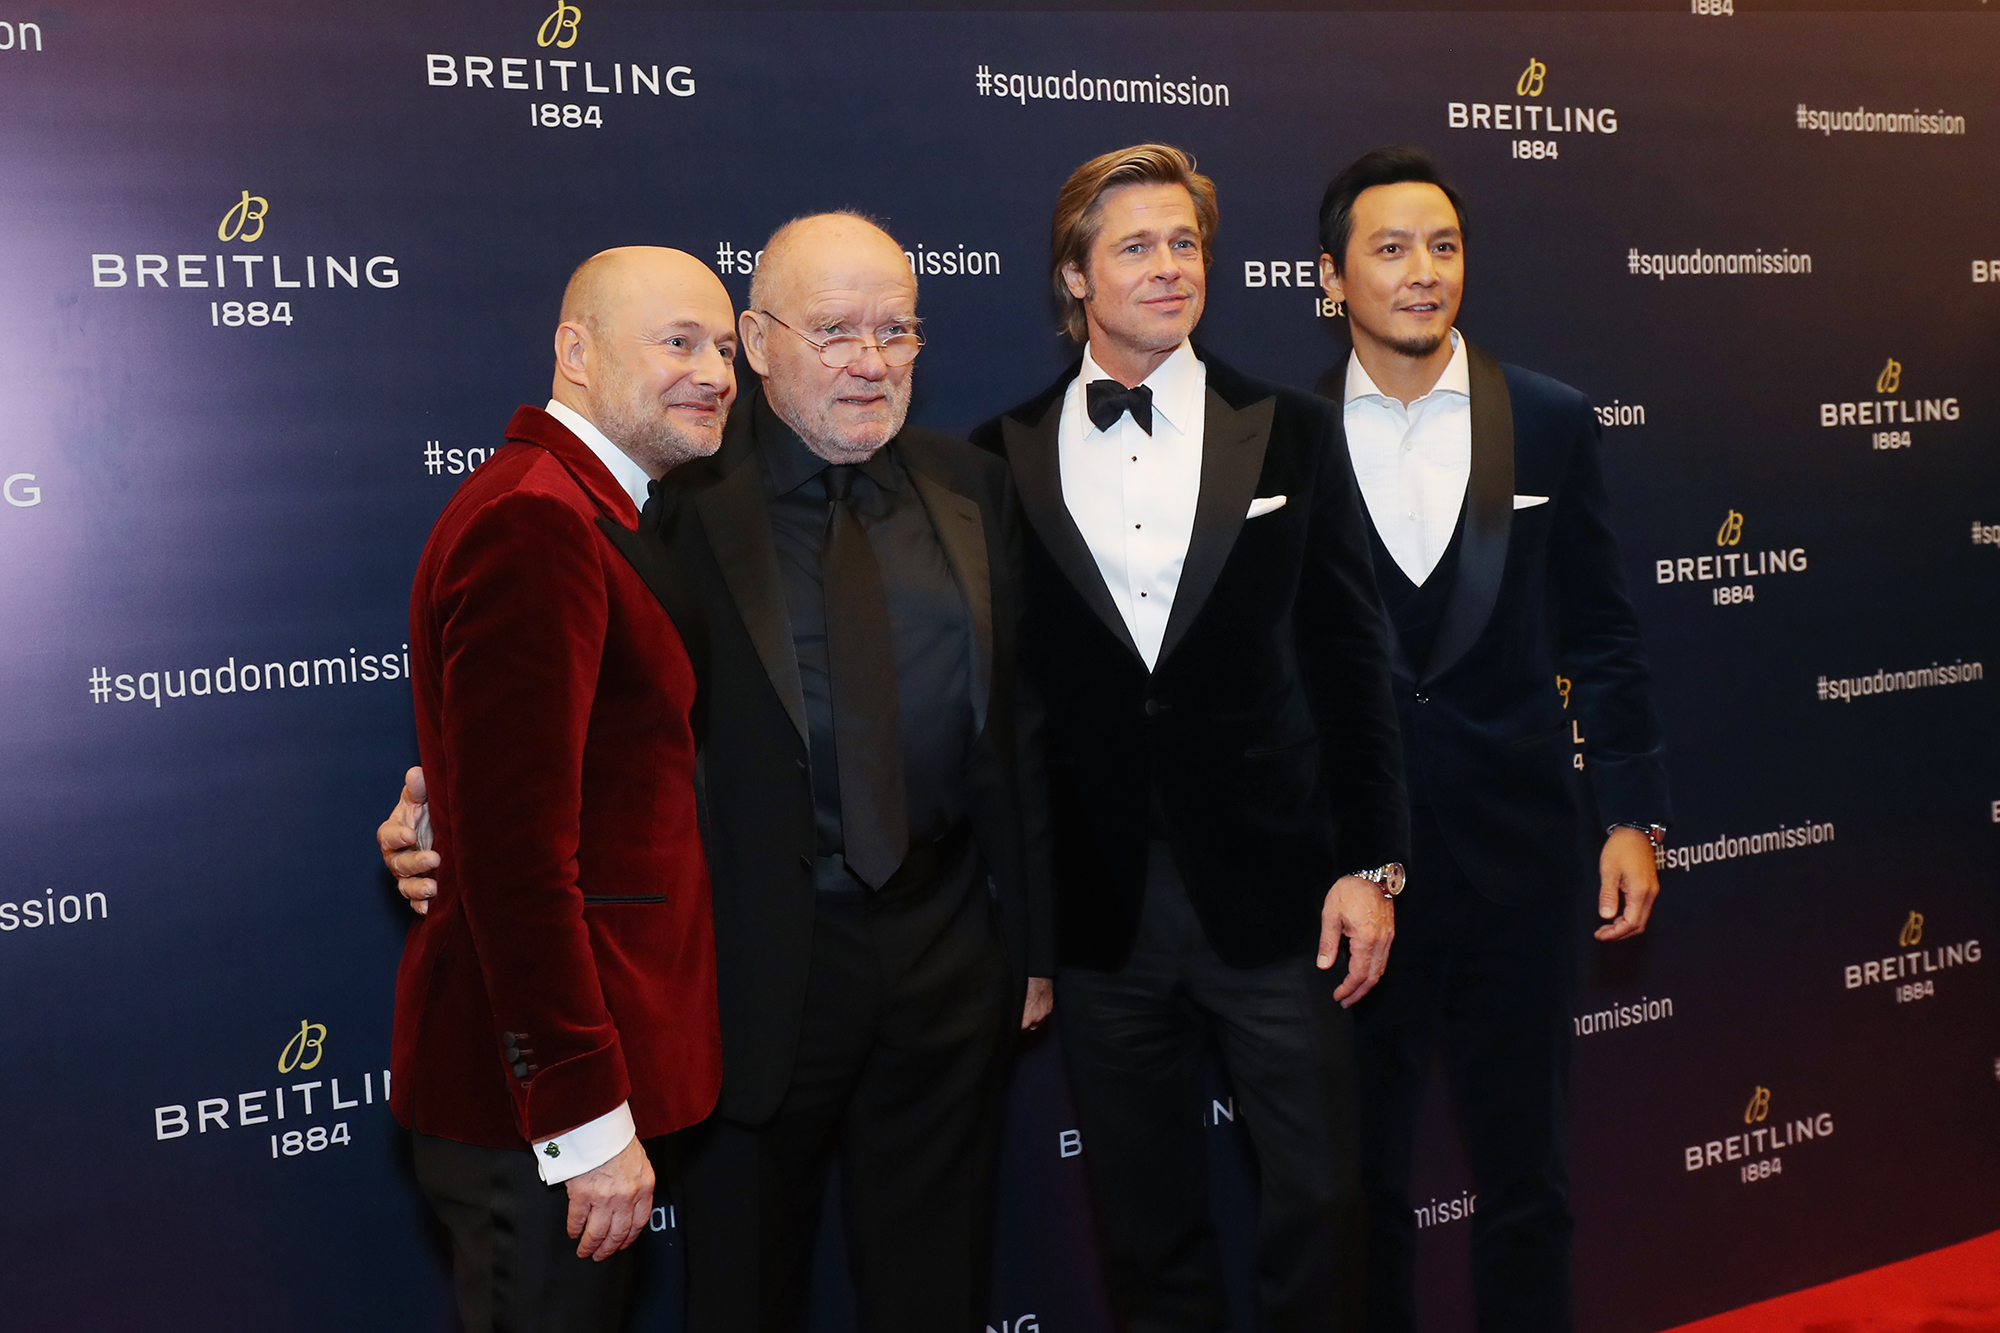 From left to right: Georges Kern, Peter Lindbergh, Brad Pitt, and Daniel Wu.